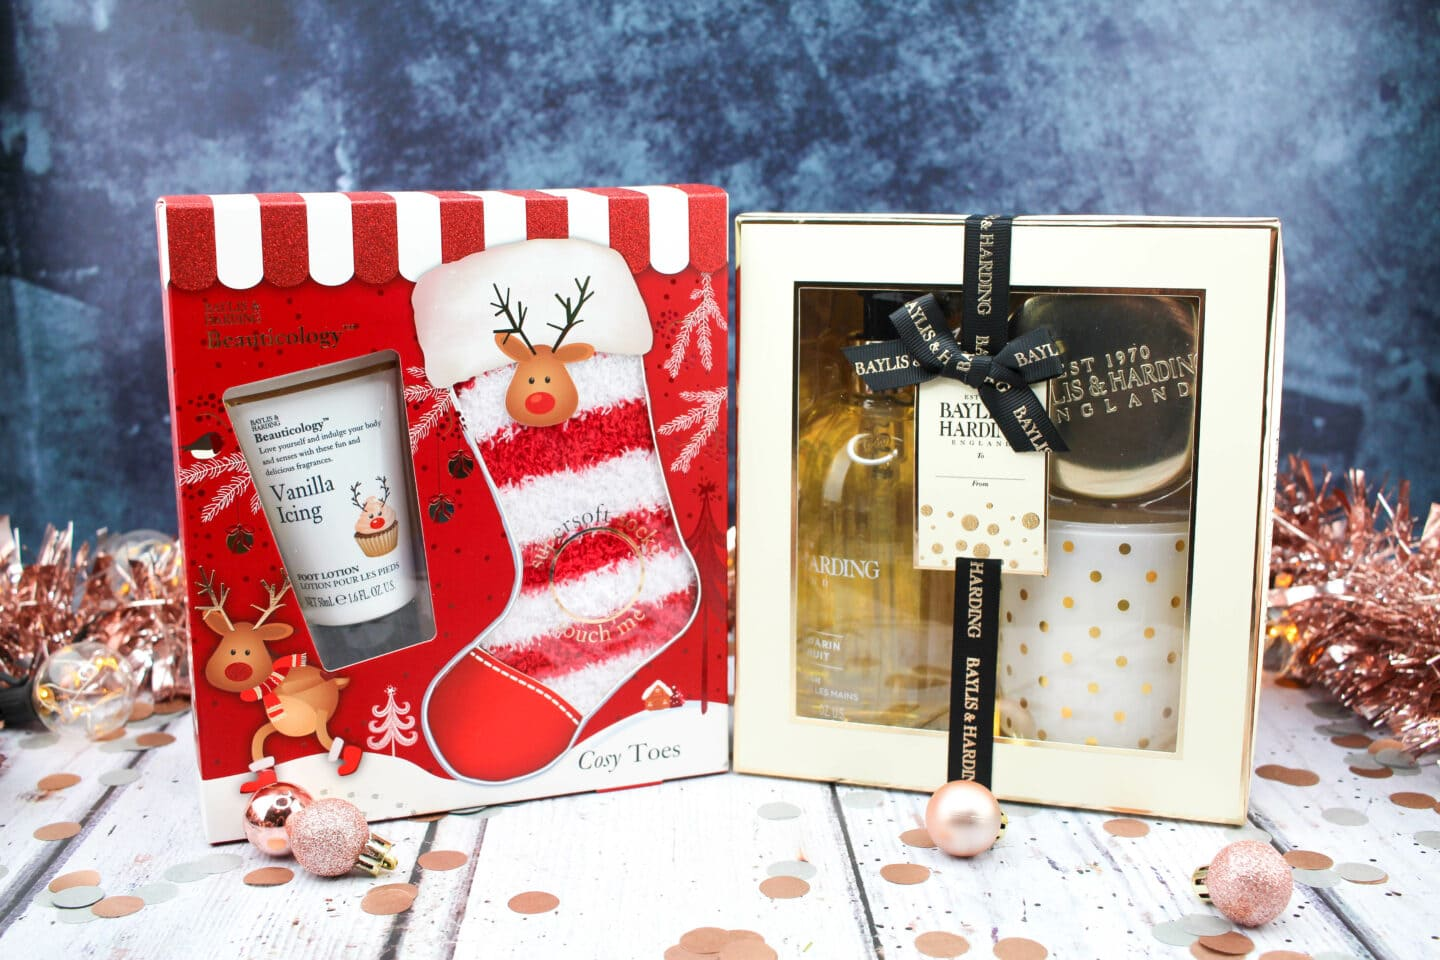 Sweet Mandarin & Grapefruit Luxury Home Gift Set RRP £15.00 Beauticology Rudolph Festive Treats for Feet Set RRP £8.00